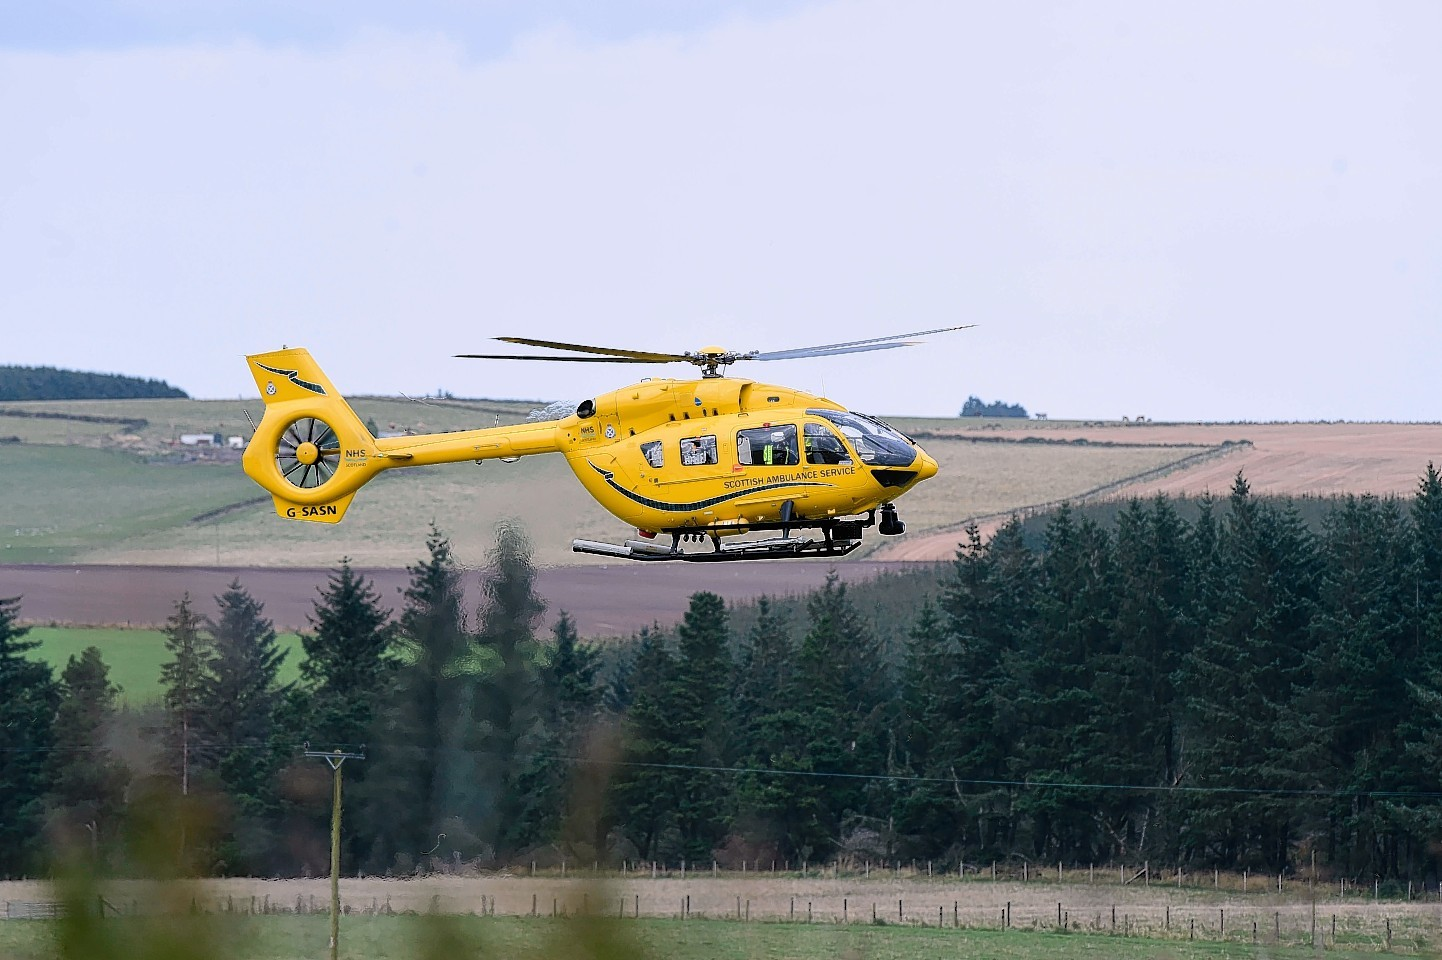 The air ambulance departs the A98